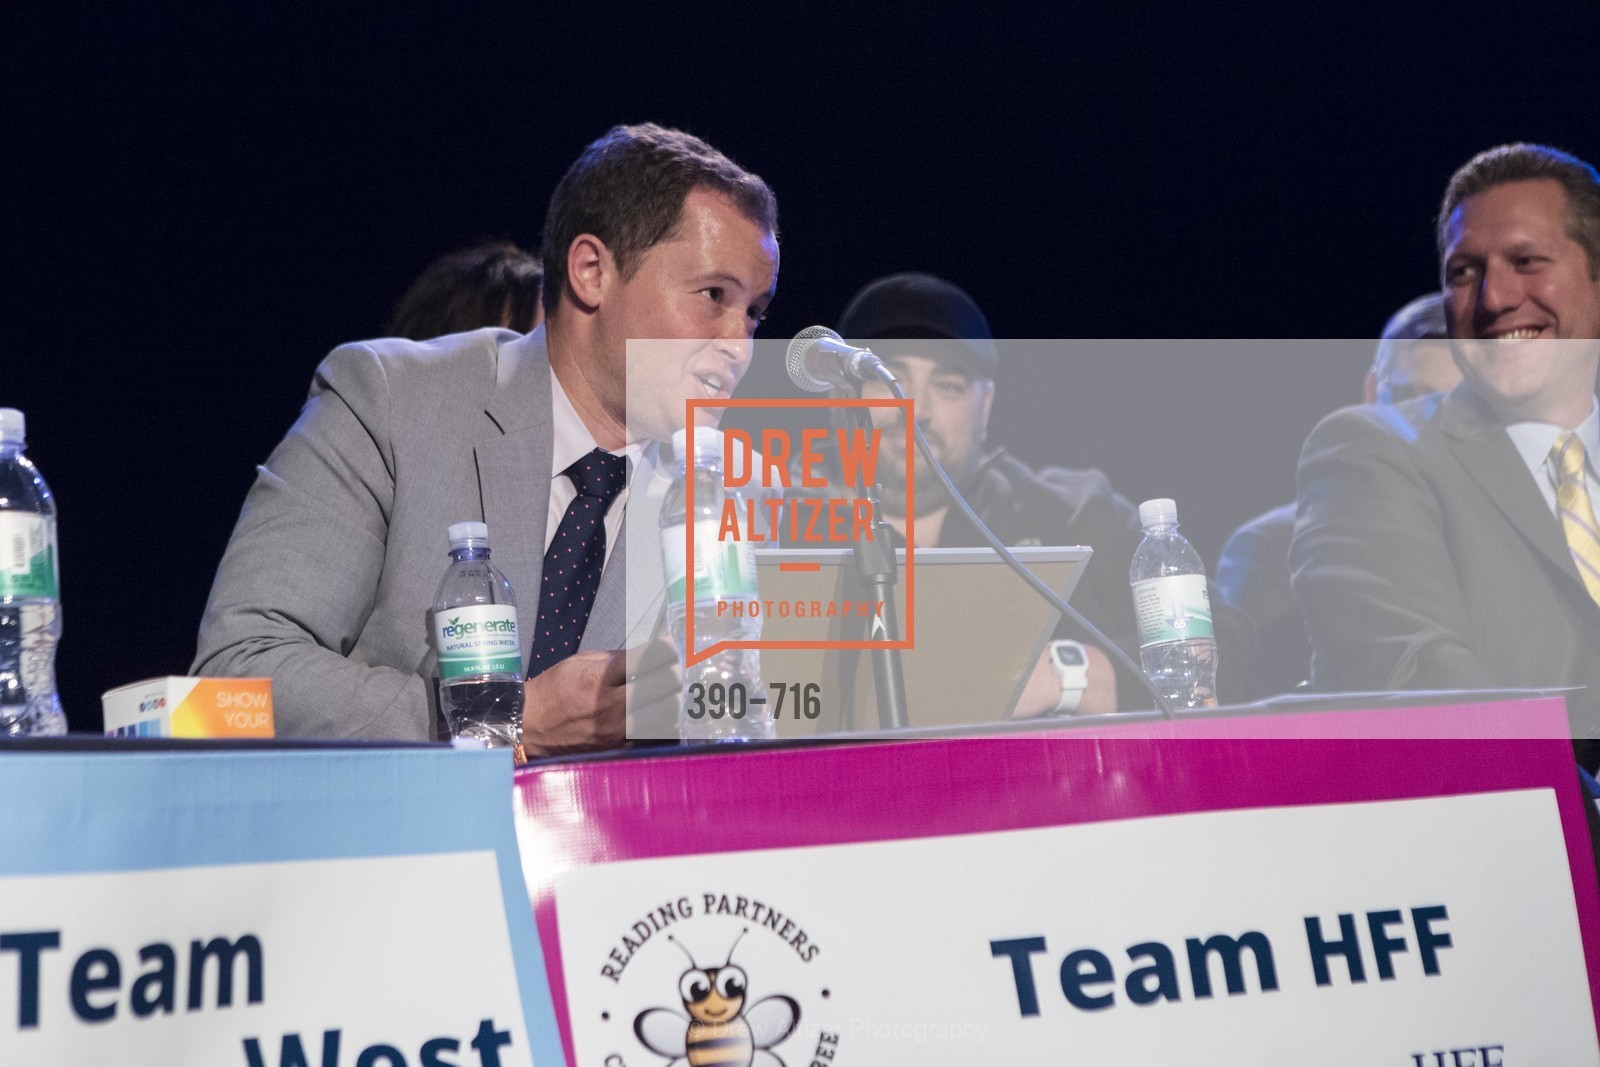 Brandon Rogoff, READING PARTNERS BAY AREA Celebrity Spelling Bee, US, May 9th, 2015,Drew Altizer, Drew Altizer Photography, full-service event agency, private events, San Francisco photographer, photographer California